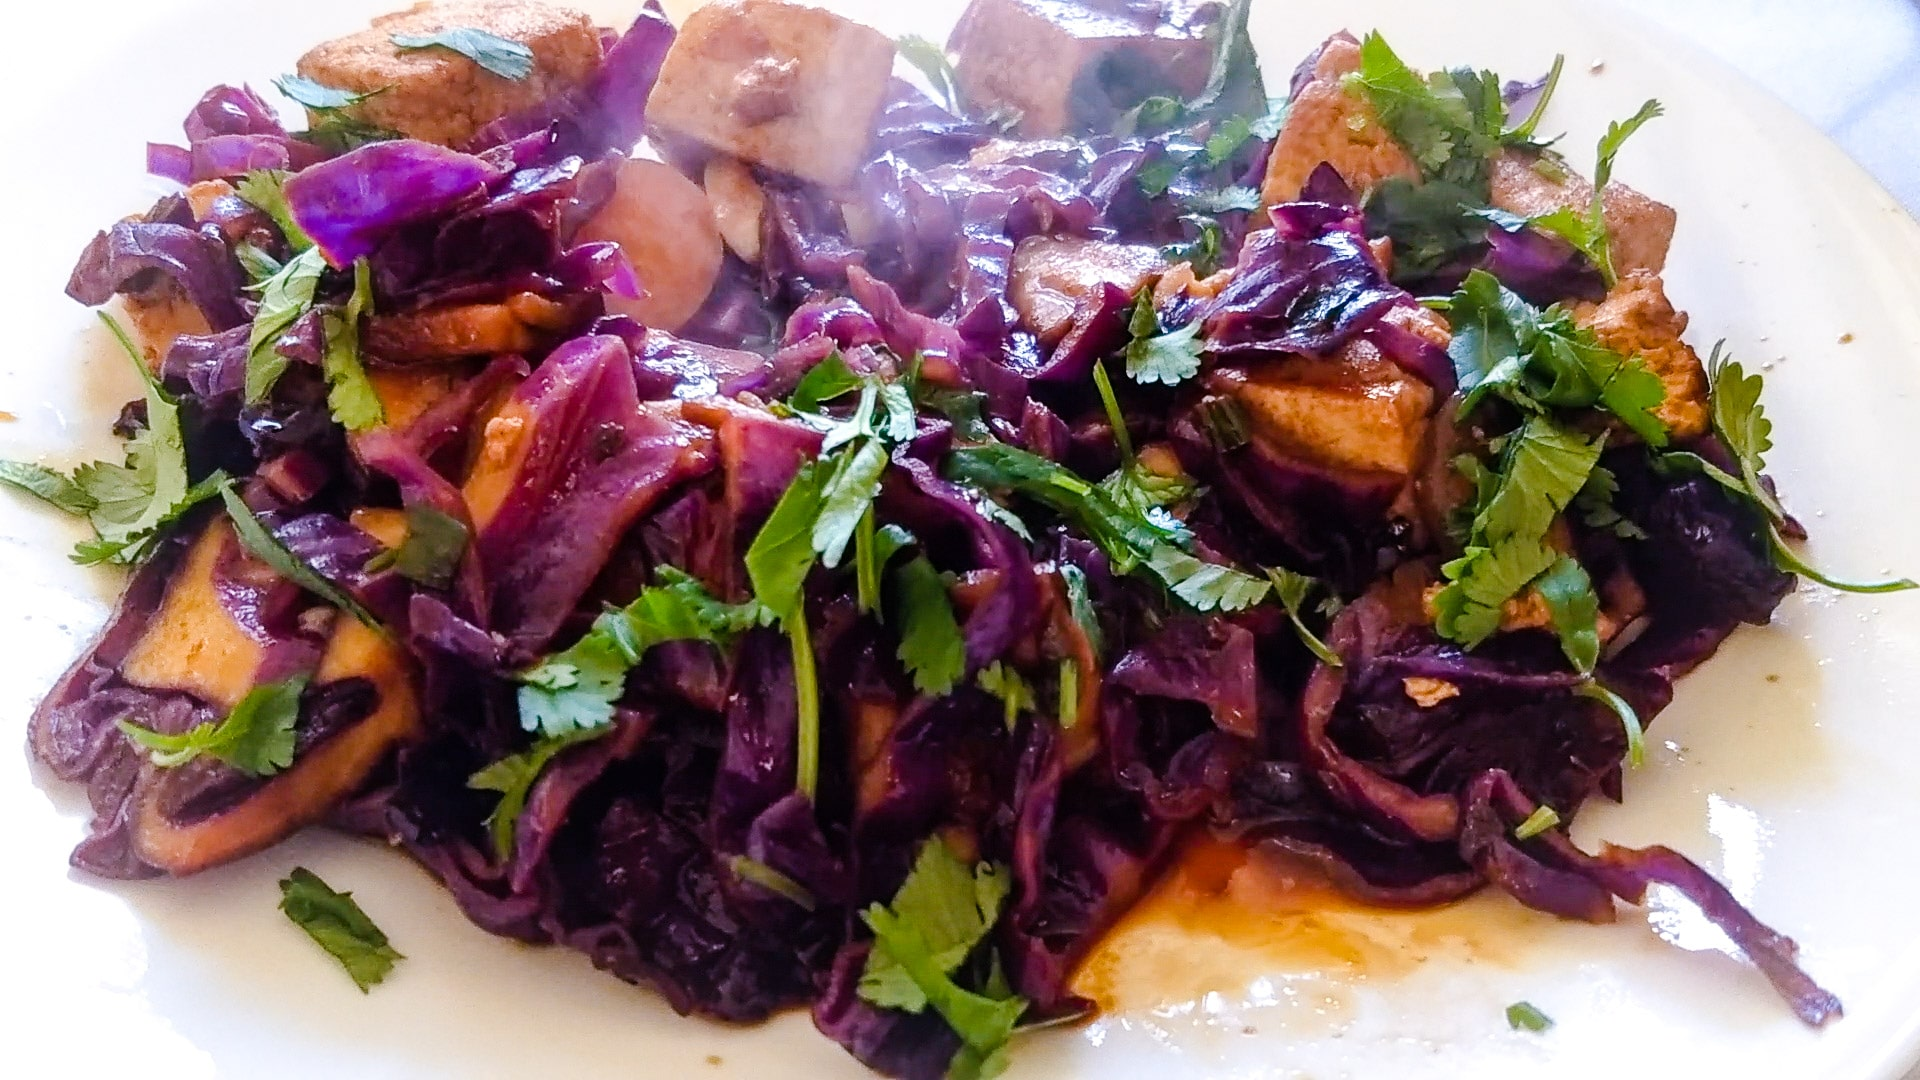 How to simplify stirfry so you can get dinner on the table in 15 minutes or less. Learn to stir fry tofu with cabbage, carrot, and mushrooms. This is a delicious and nutritious dish with umami deliciousness to satisfy your hunger.